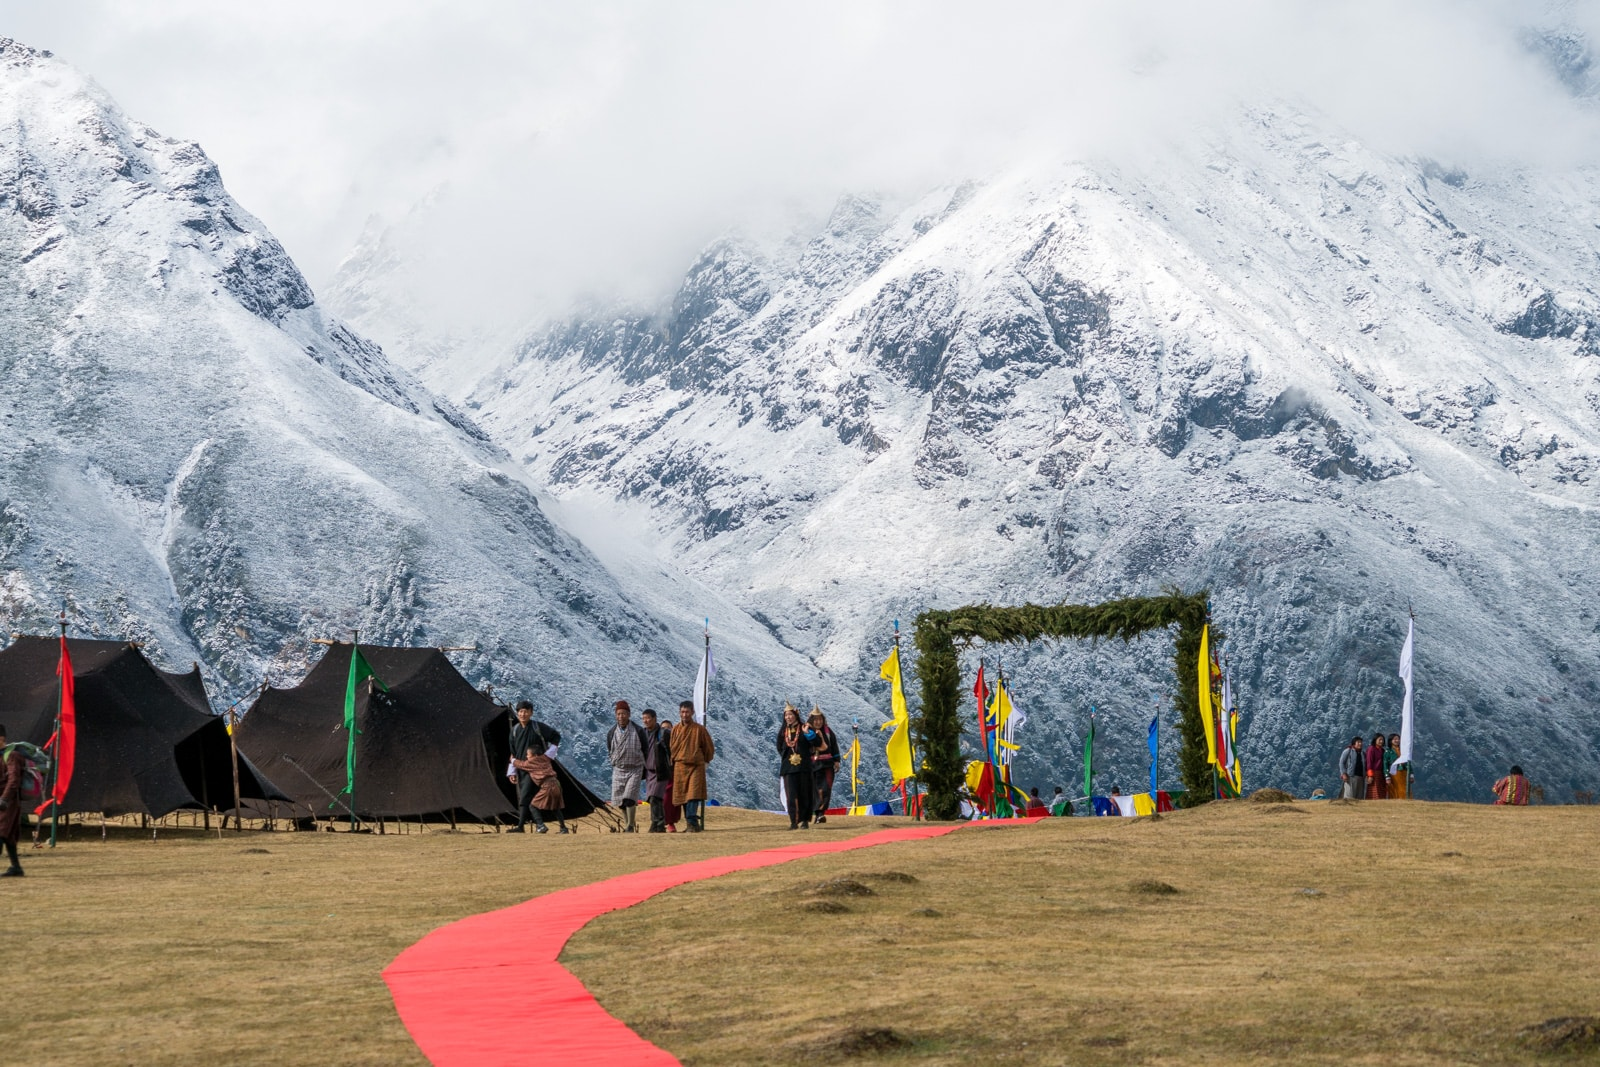 Photos of the 2017 Royal Highlander Festival in Bhutan - Entrance to the festival grounds with snowy Himalayas in the background - Lost With Purpose travel blog